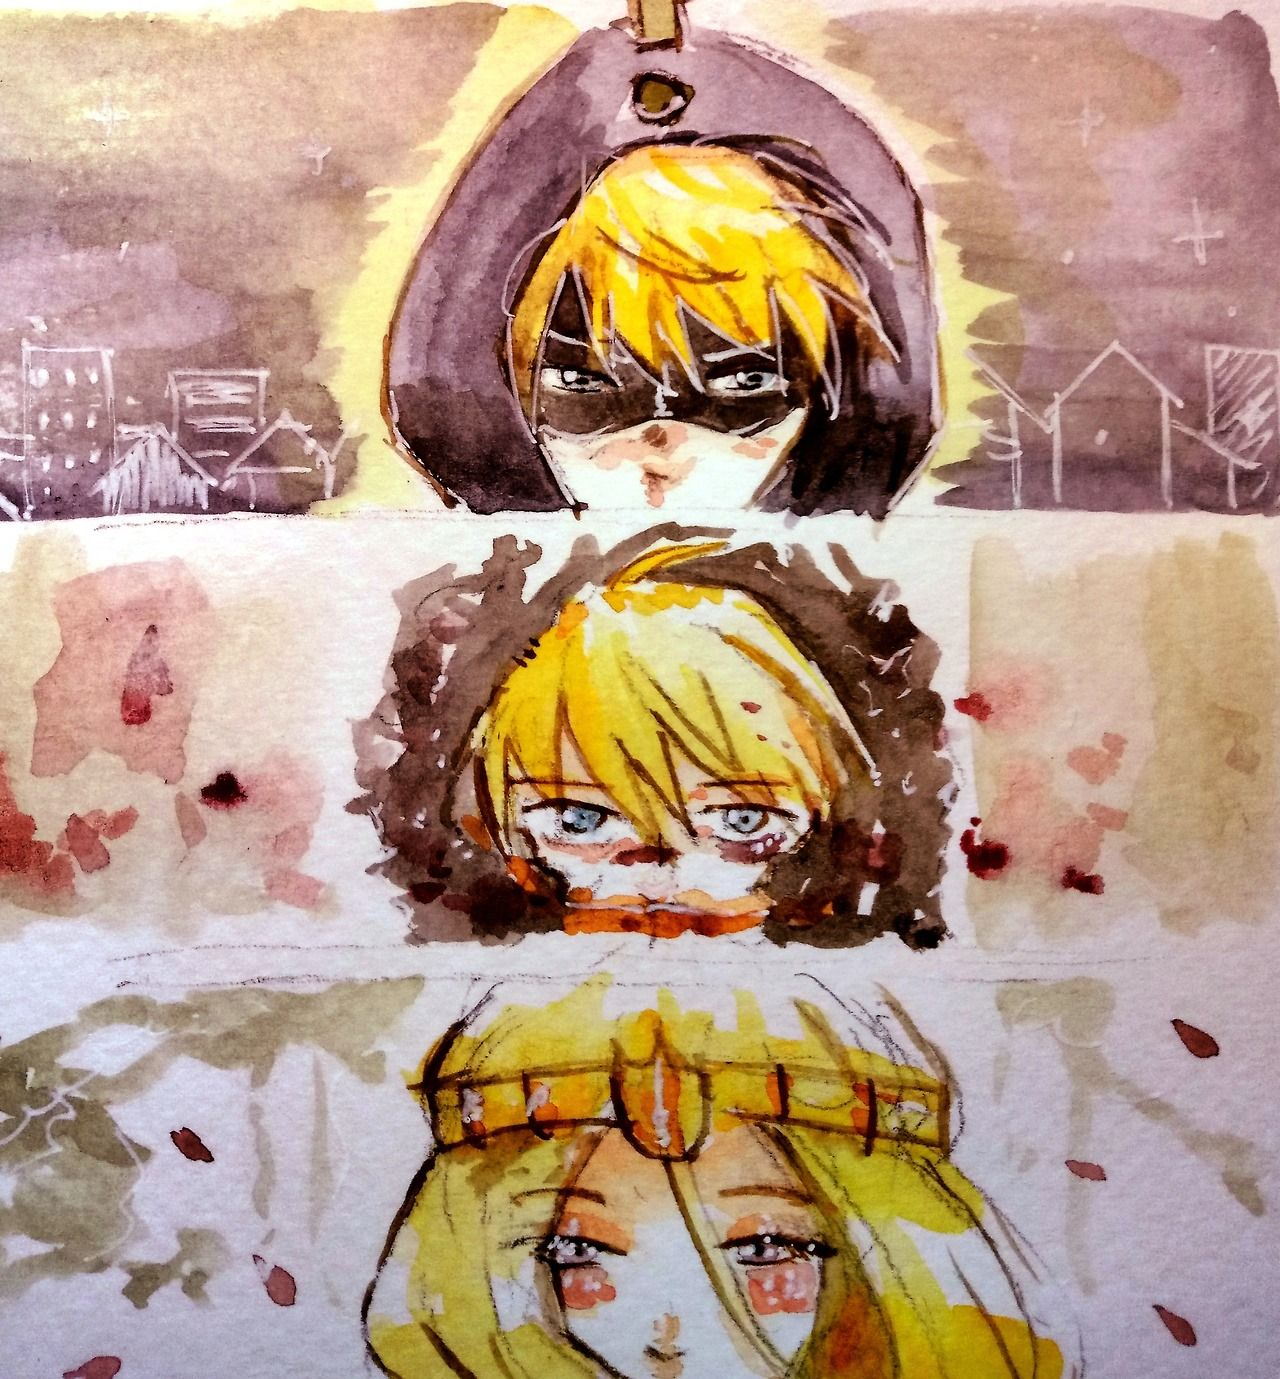 The faces of Kenny by Rosiochii #kenny mccormick #south park